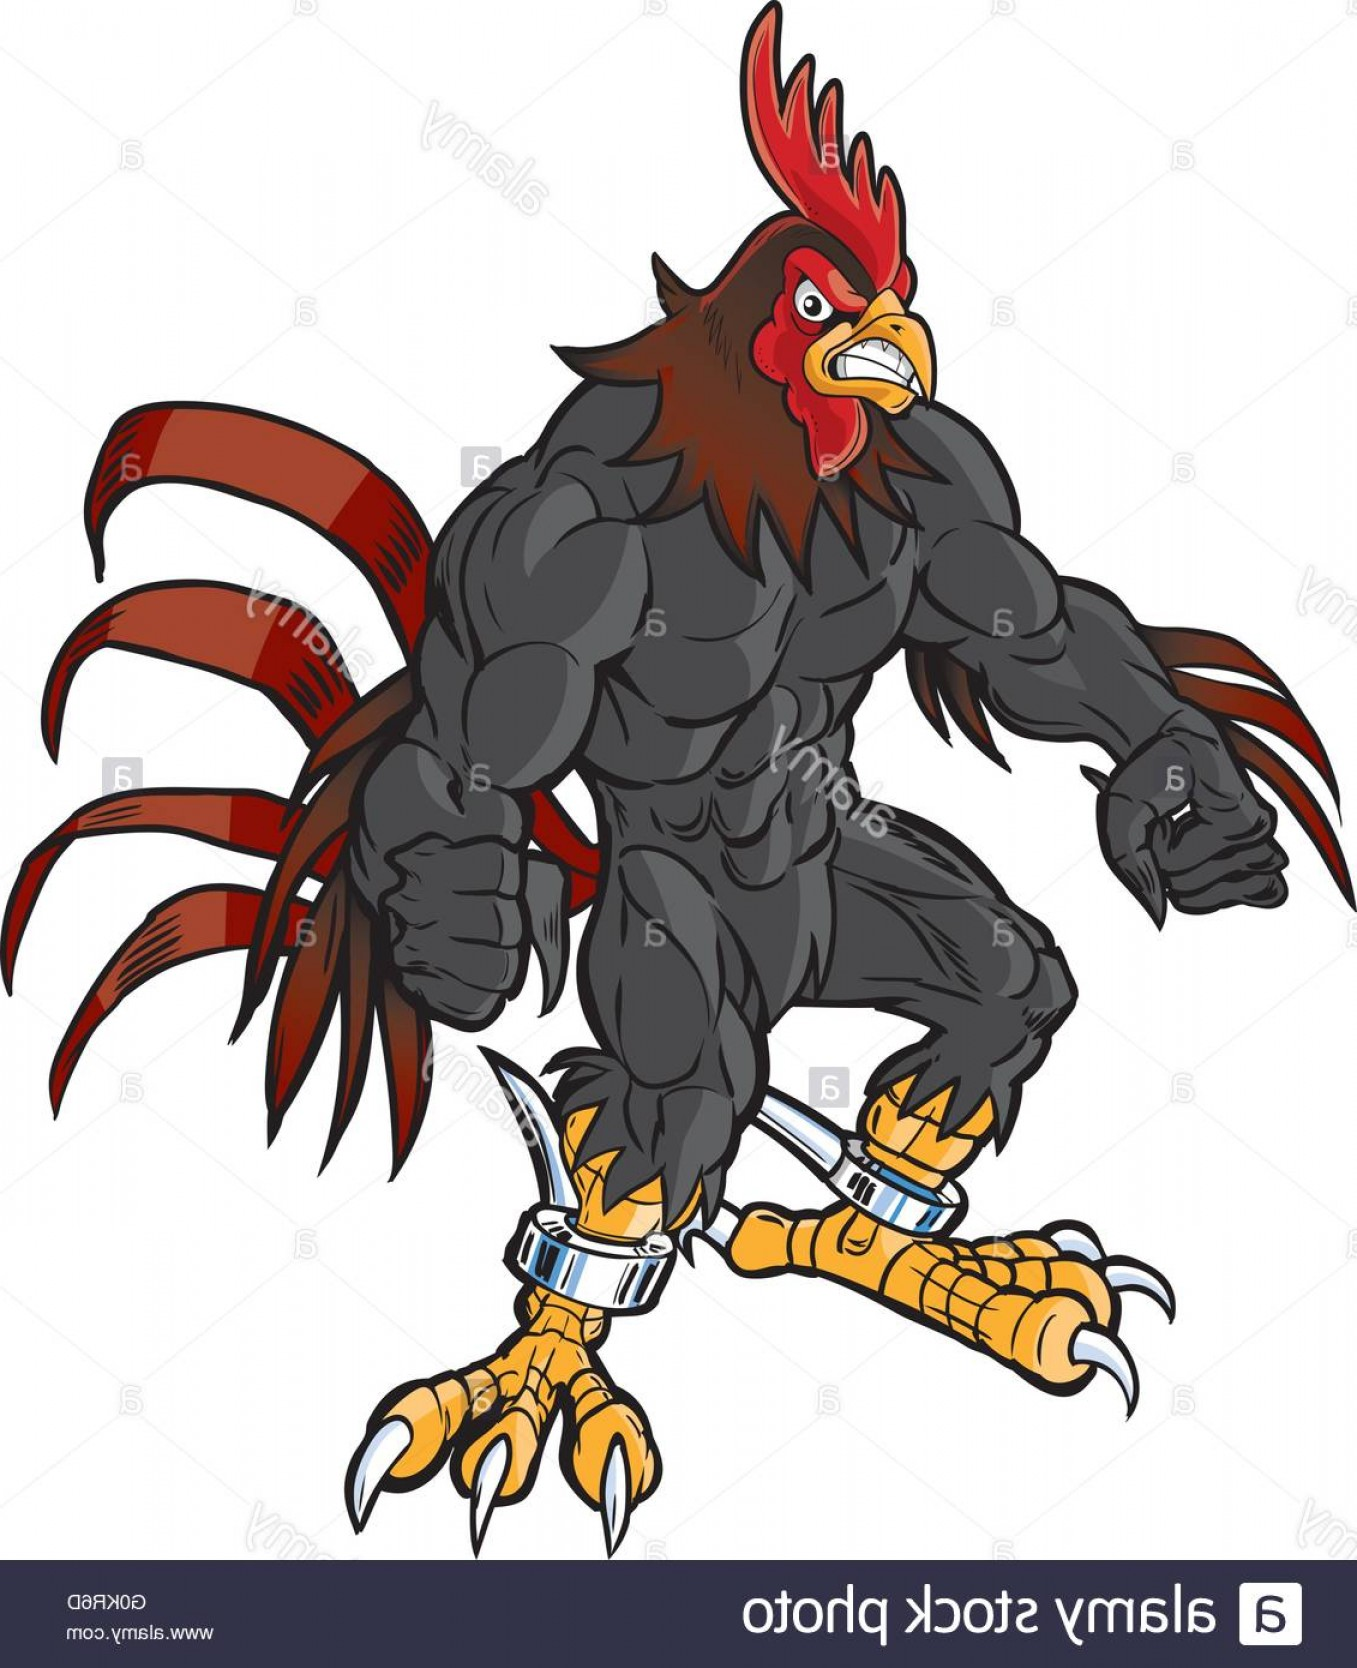 Spurs Clip Art Vector: Stock Photo Vector Cartoon Clip Art Illustration Of An Angry Muscular Rooster